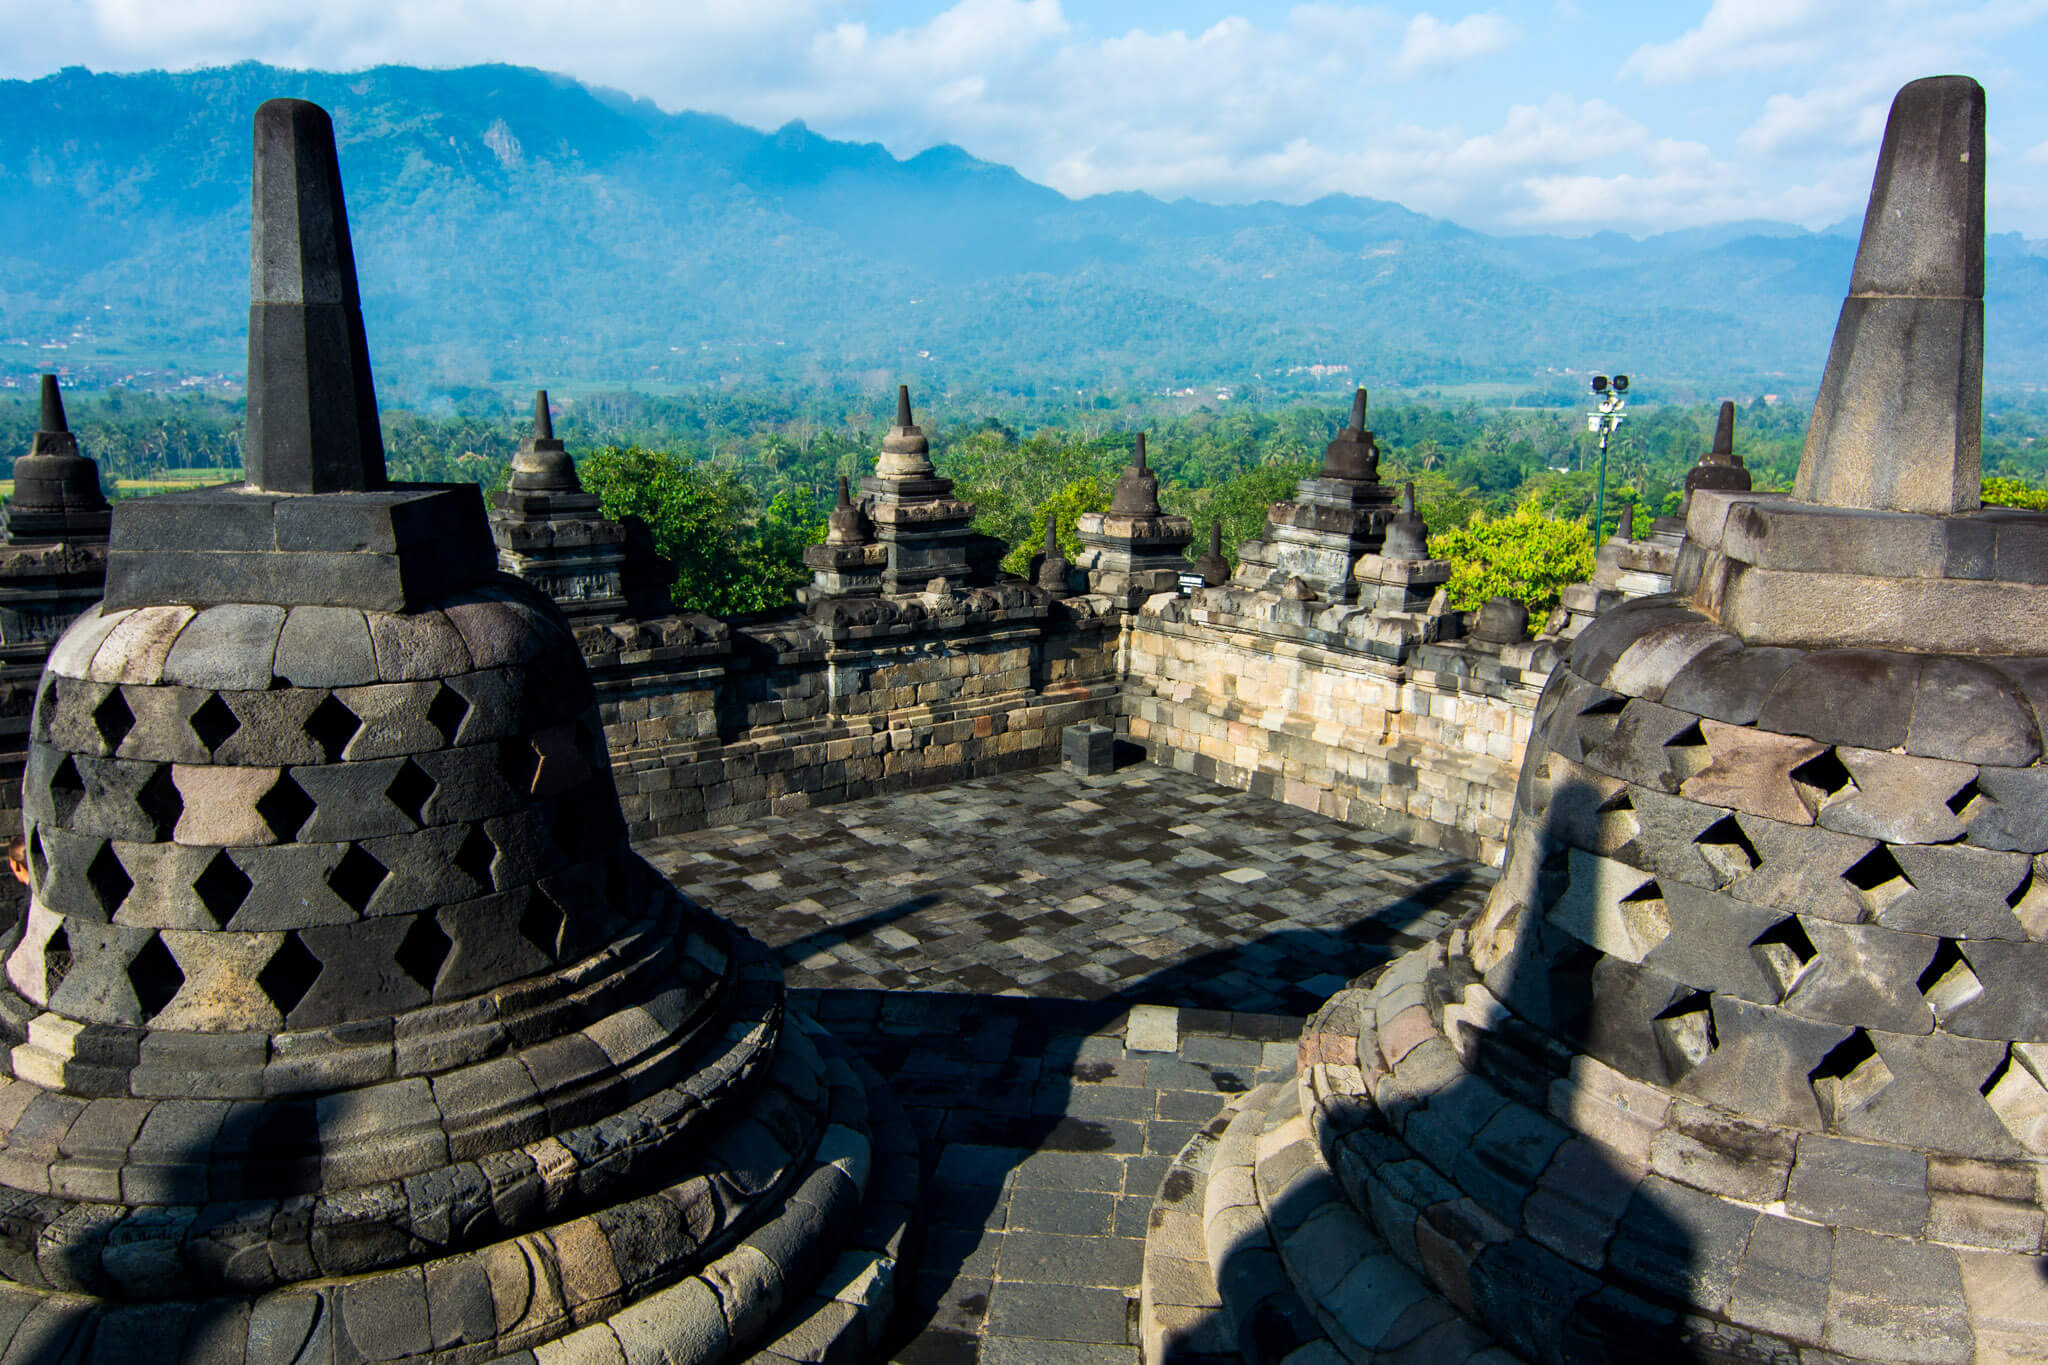 The bell stupas of Borobudur Temple